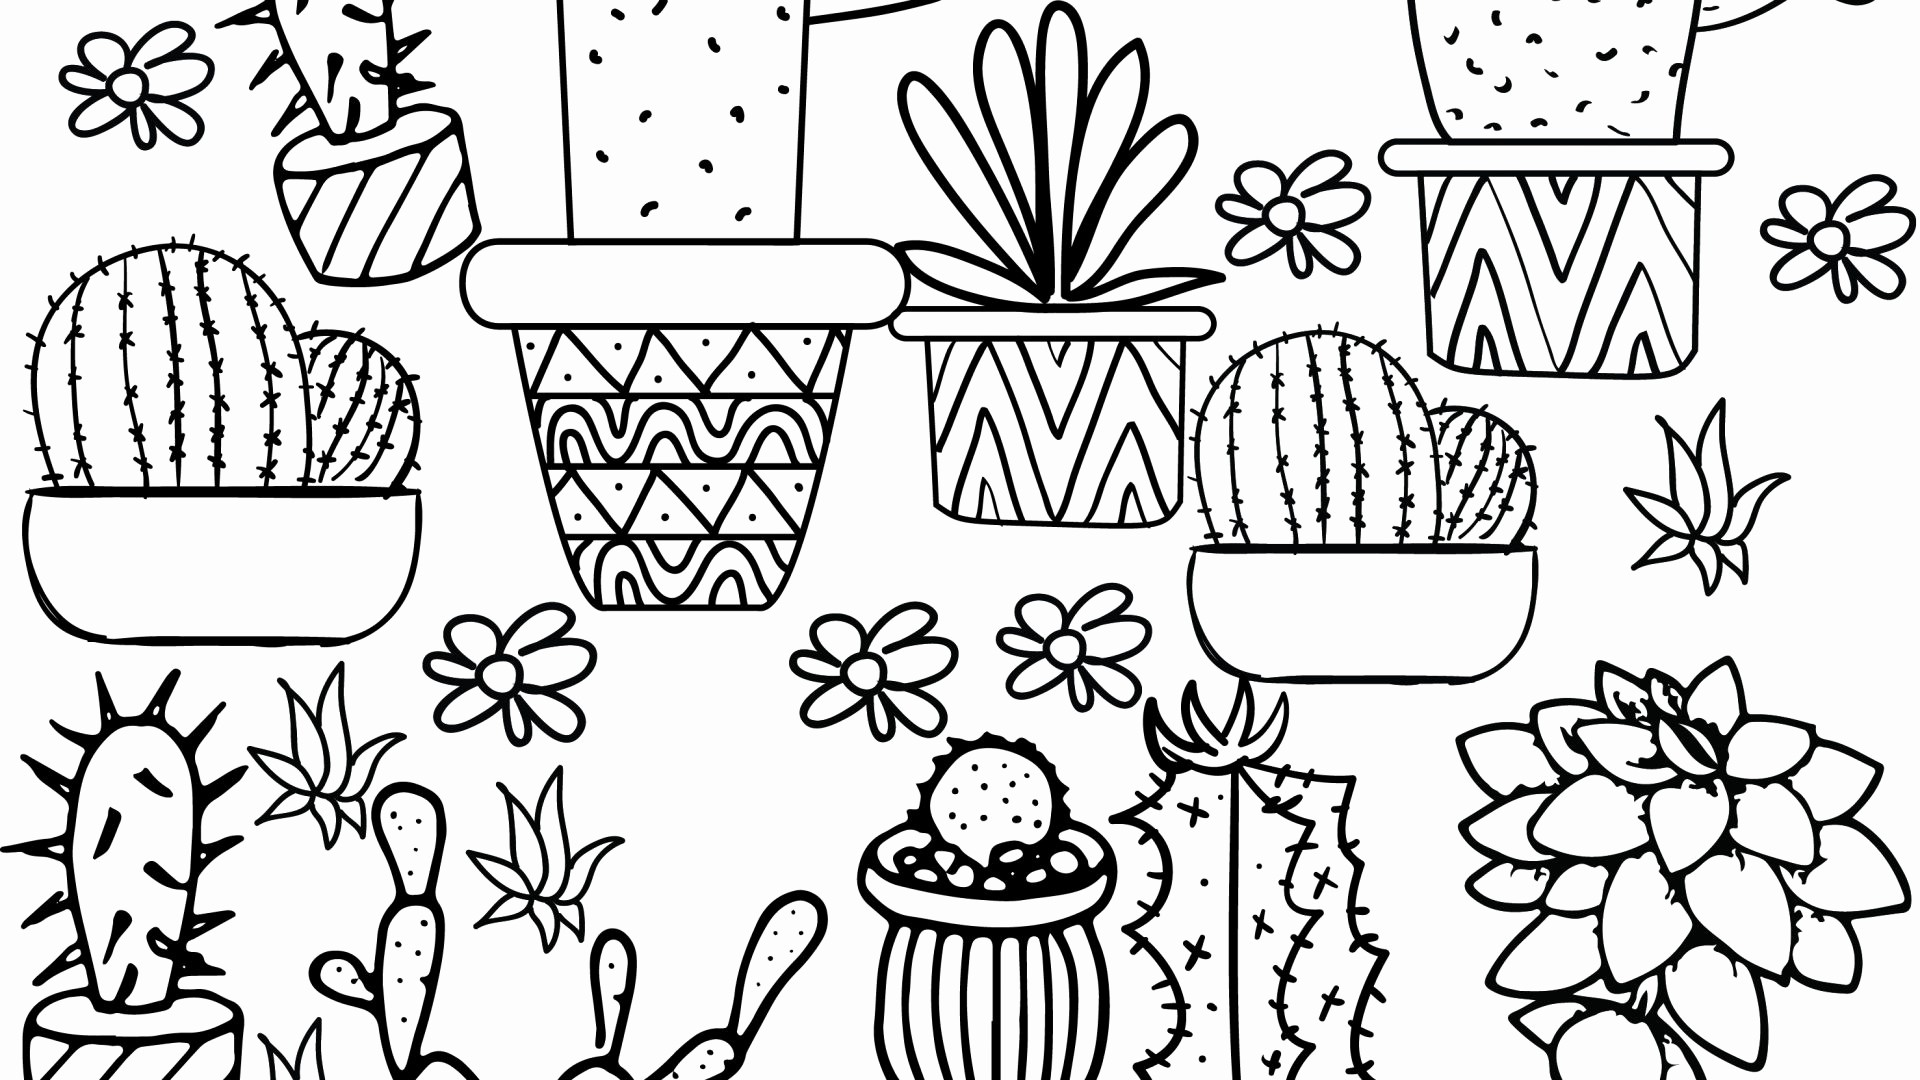 Live Com Sign In Page Unique Perspective Cactus Coloring Sheet Free Printable Pages for